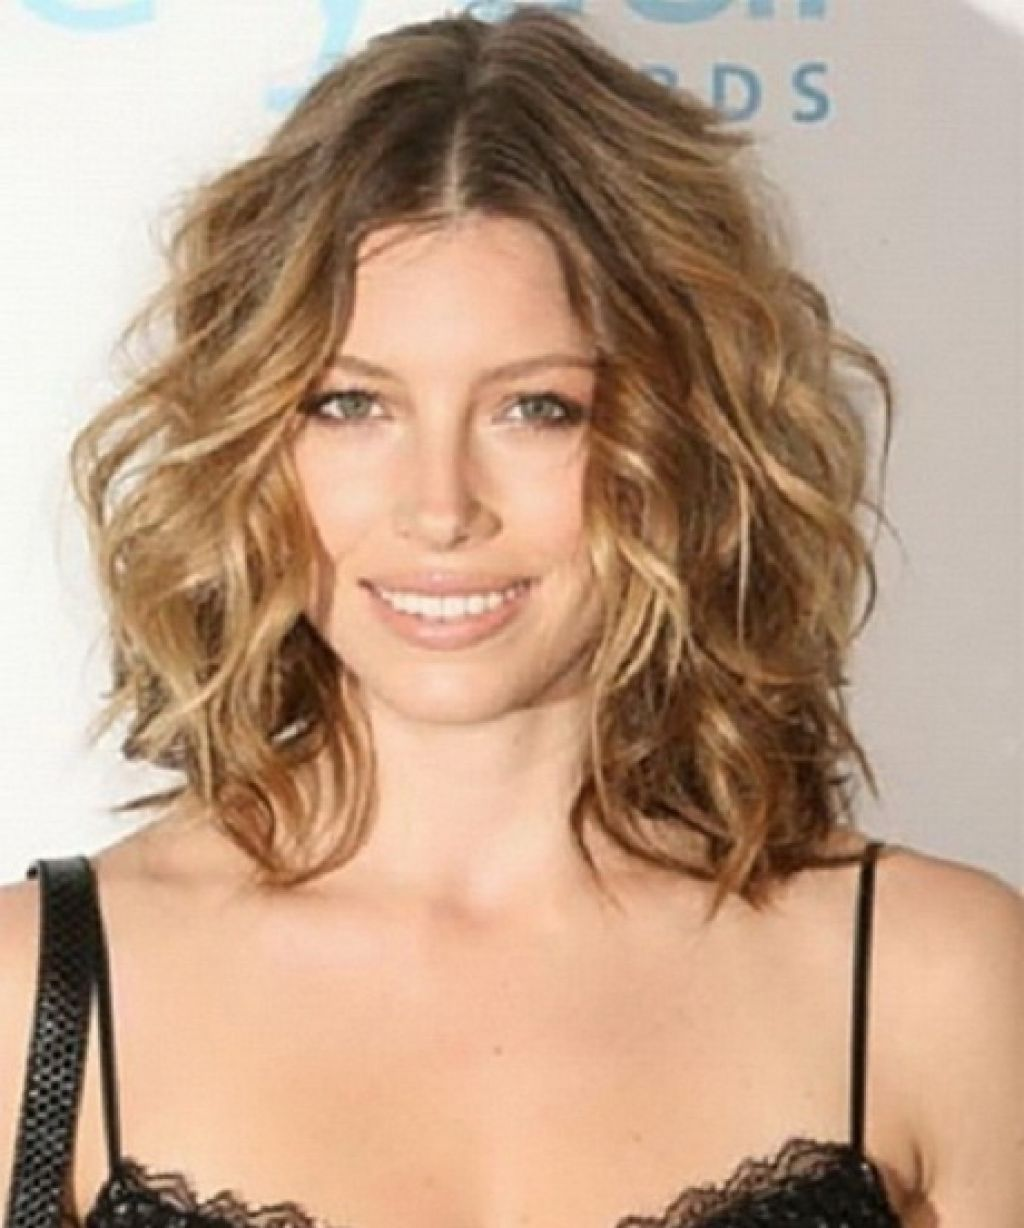 Wavy long hairstyles picture of wavy medium hairstyles ideas on